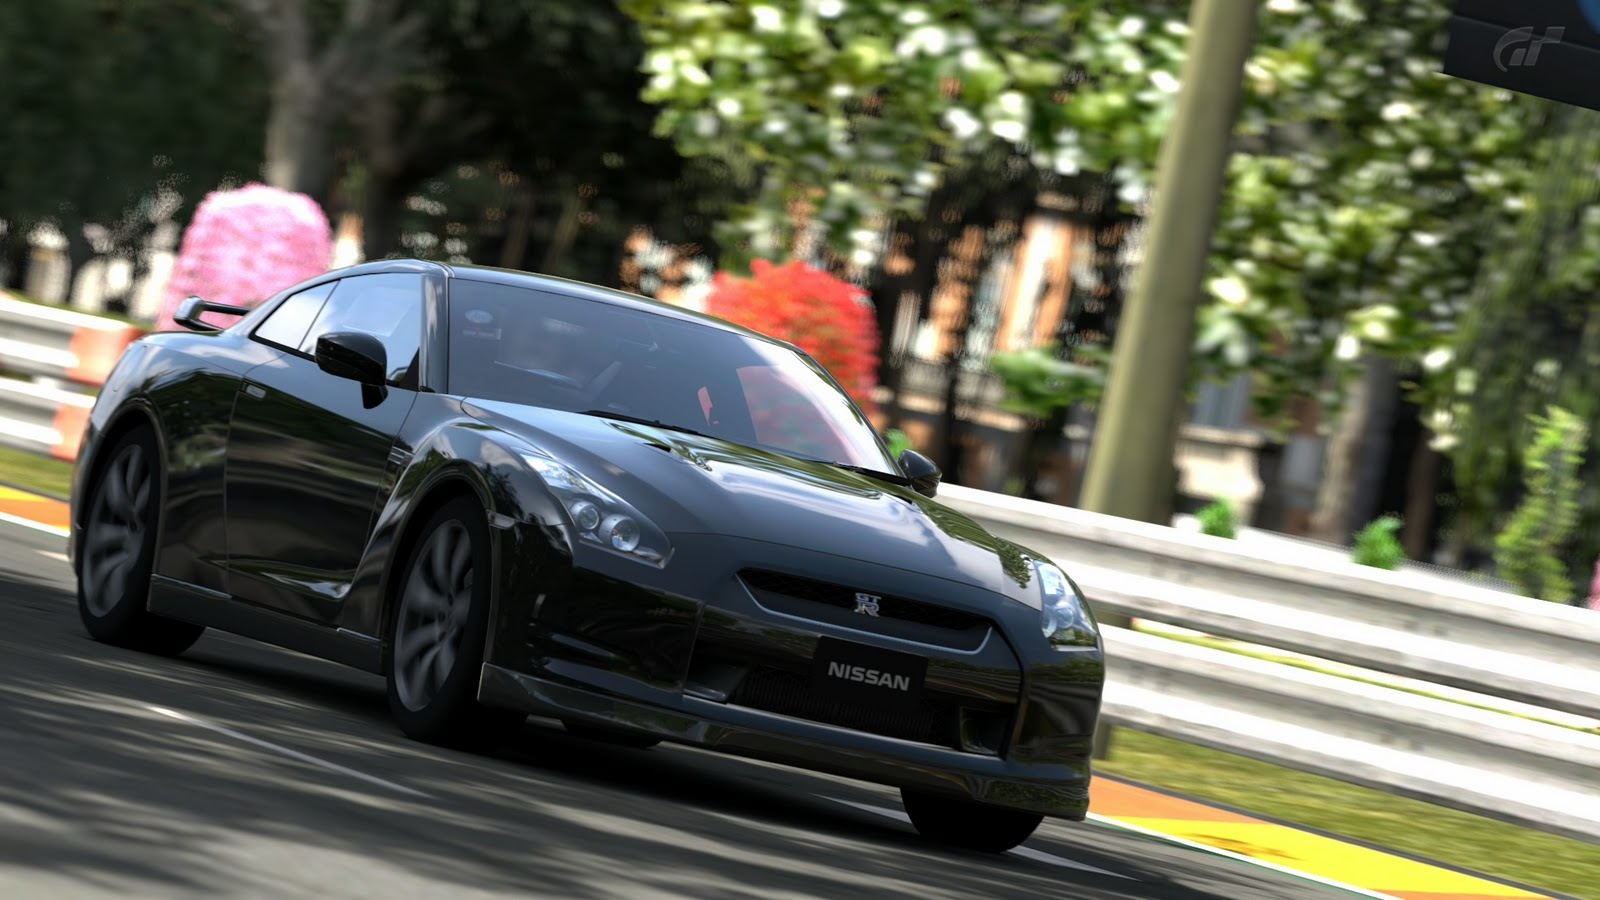 Gran Turismo The Best Key Cars To Own OnlineRaceDriver - Best sports car to own